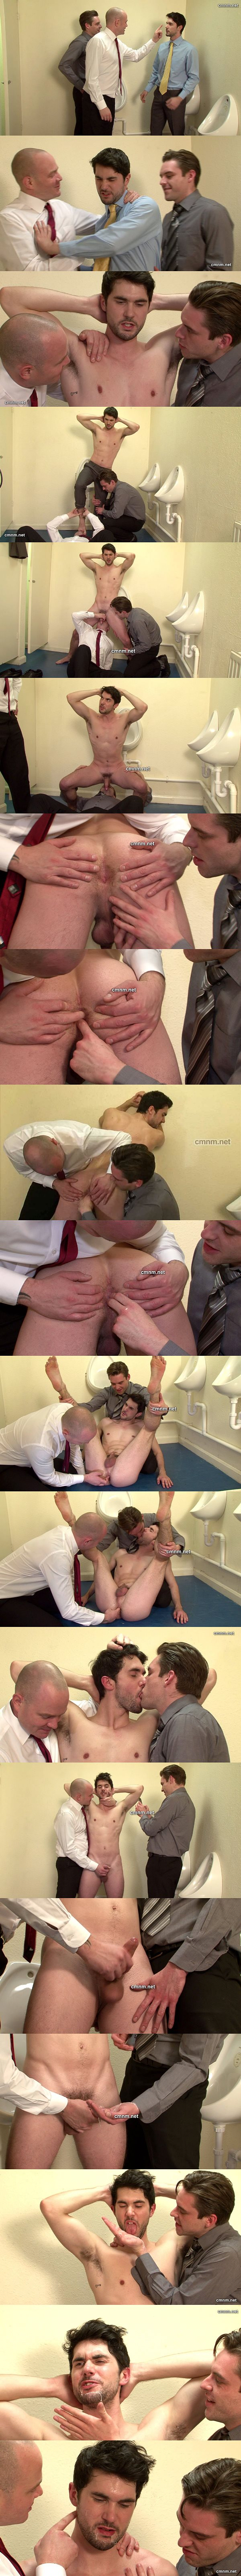 Handsome straight jock Julian gets his tight virgin ass fingered and jerked off by perverted Dave and Elliott at Cmnm 02